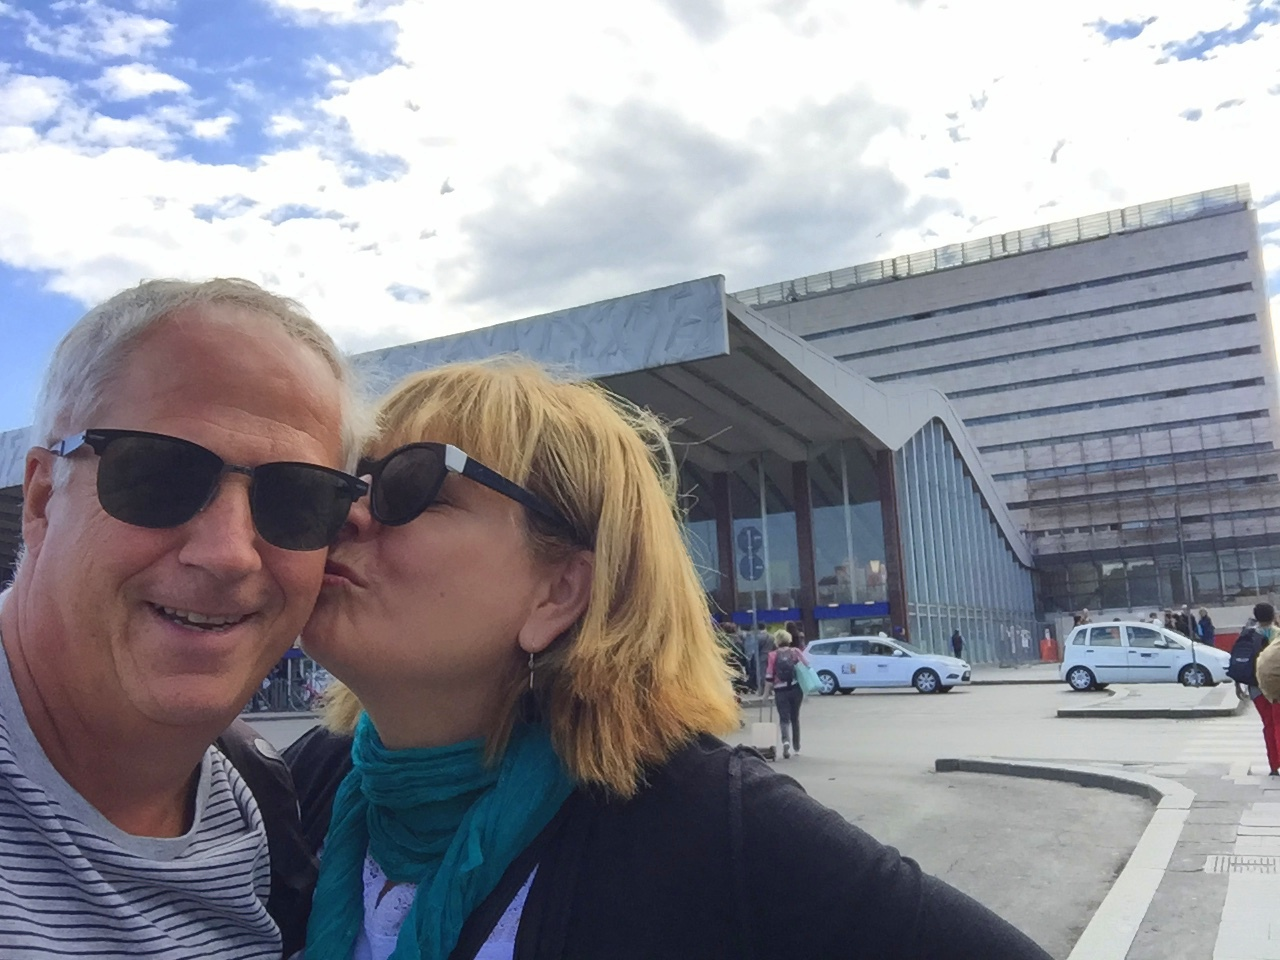 Barb sneaks a kiss for the camera outside the main train station in Rome, where we met in 1979. This year marks our 35th wedding anniversary.